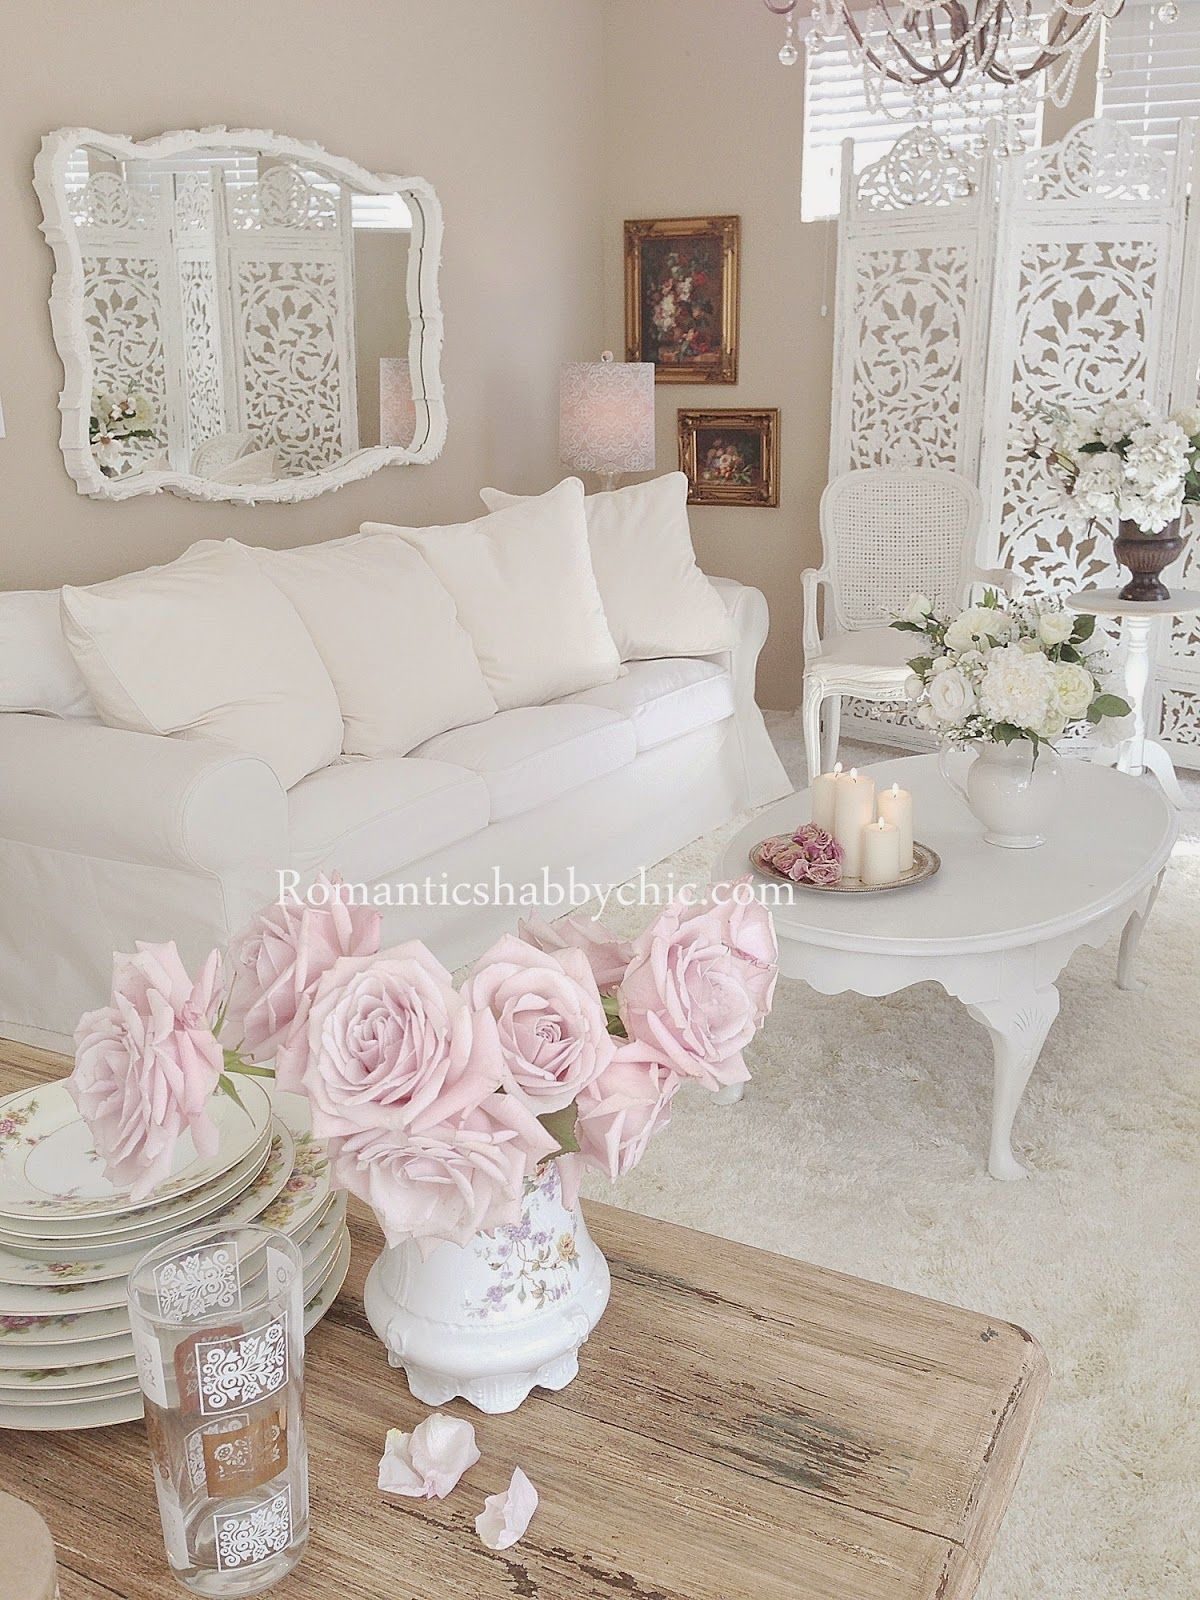 Marvelous Charming Shabby Chic Living Room Decoration Ideas   For Creative Juice